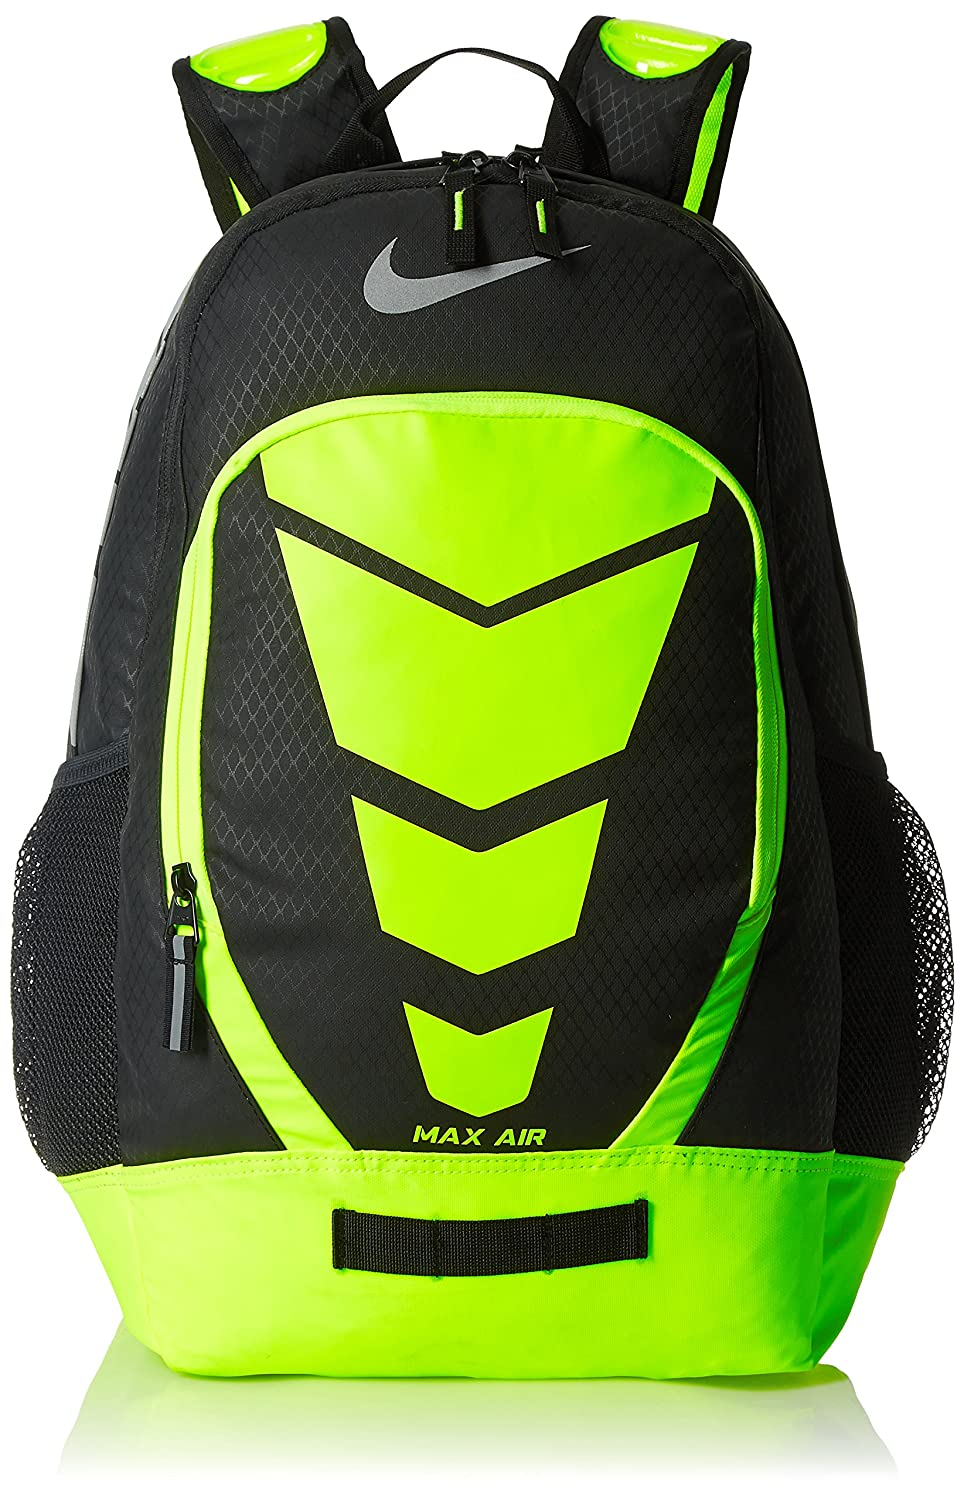 181a9266adb8 NIKE MAX AIRR Vapor Backpack Large  Amazon.in  Sports